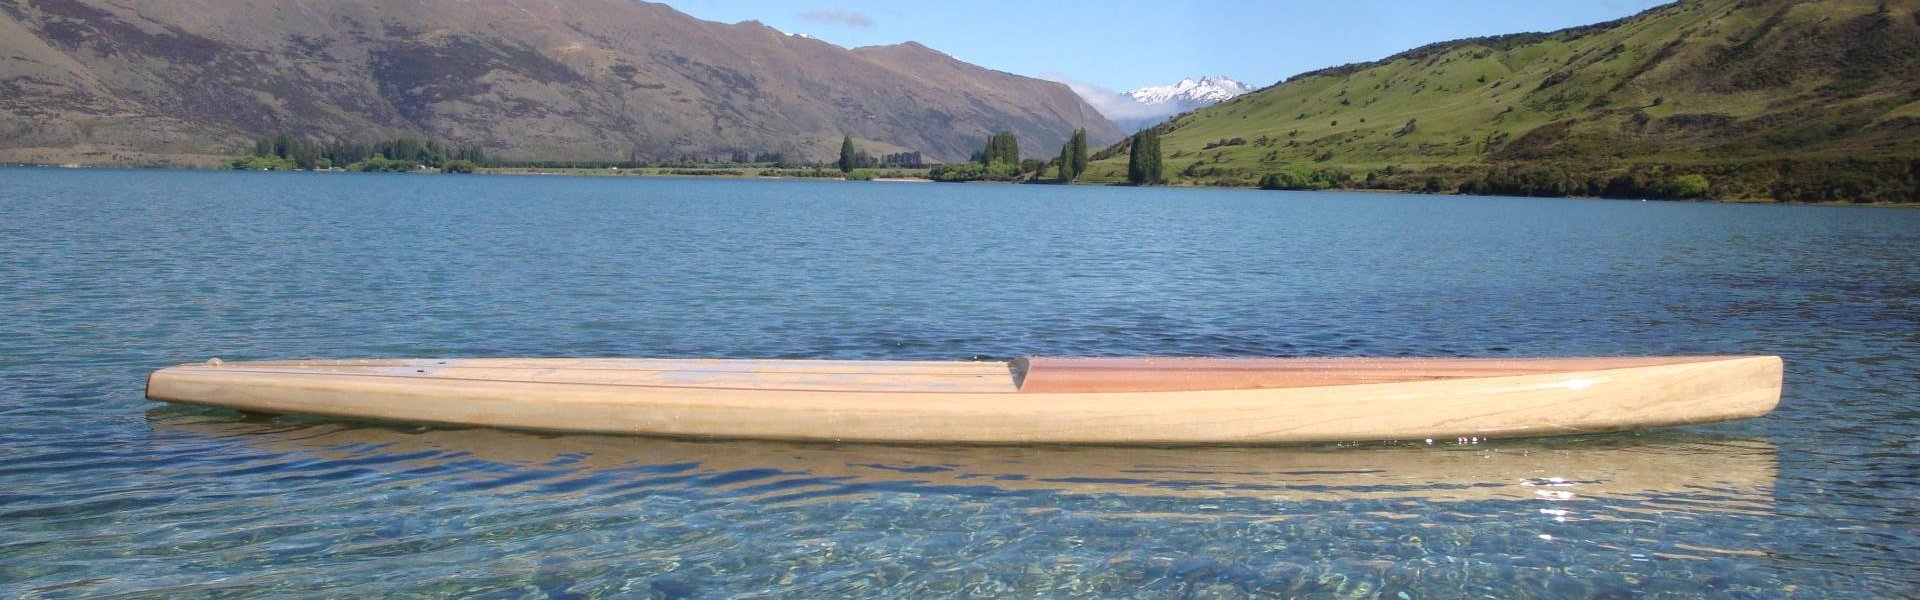 Custom Made Wooden Paddleboard